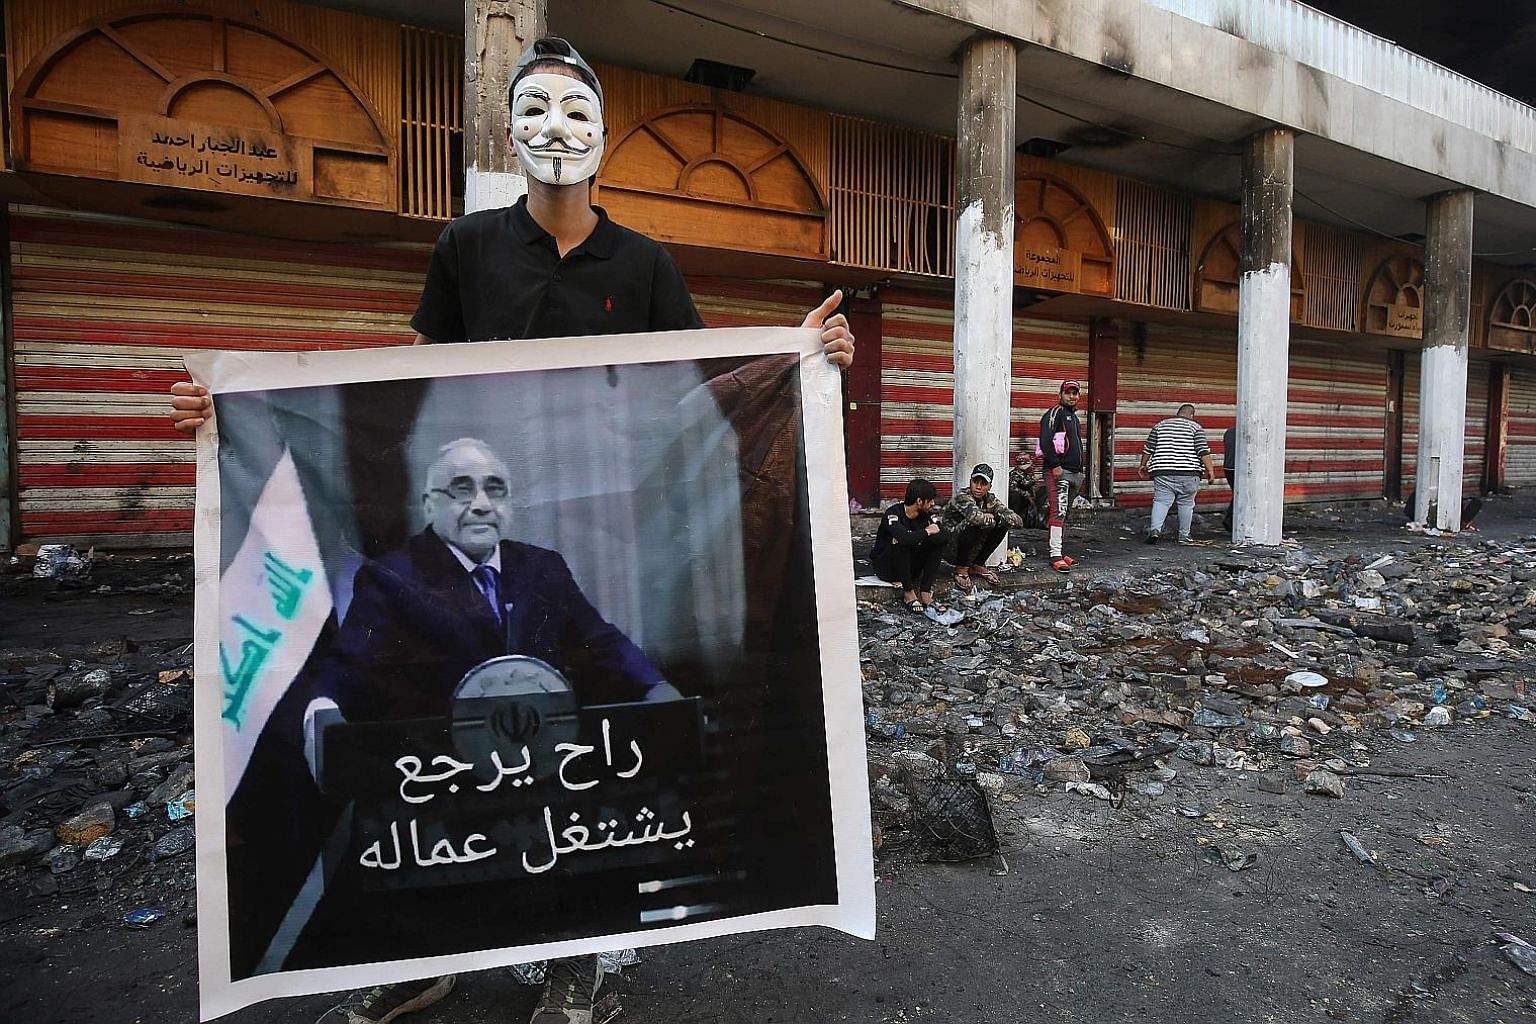 """A protester in Baghdad on Dec 5 with a poster of newly resigned prime minister Adel Abdel Mahdi. The Arabic words mean """"He will now join the labour"""". PHOTO: AGENCE FRANCE-PRESSE"""